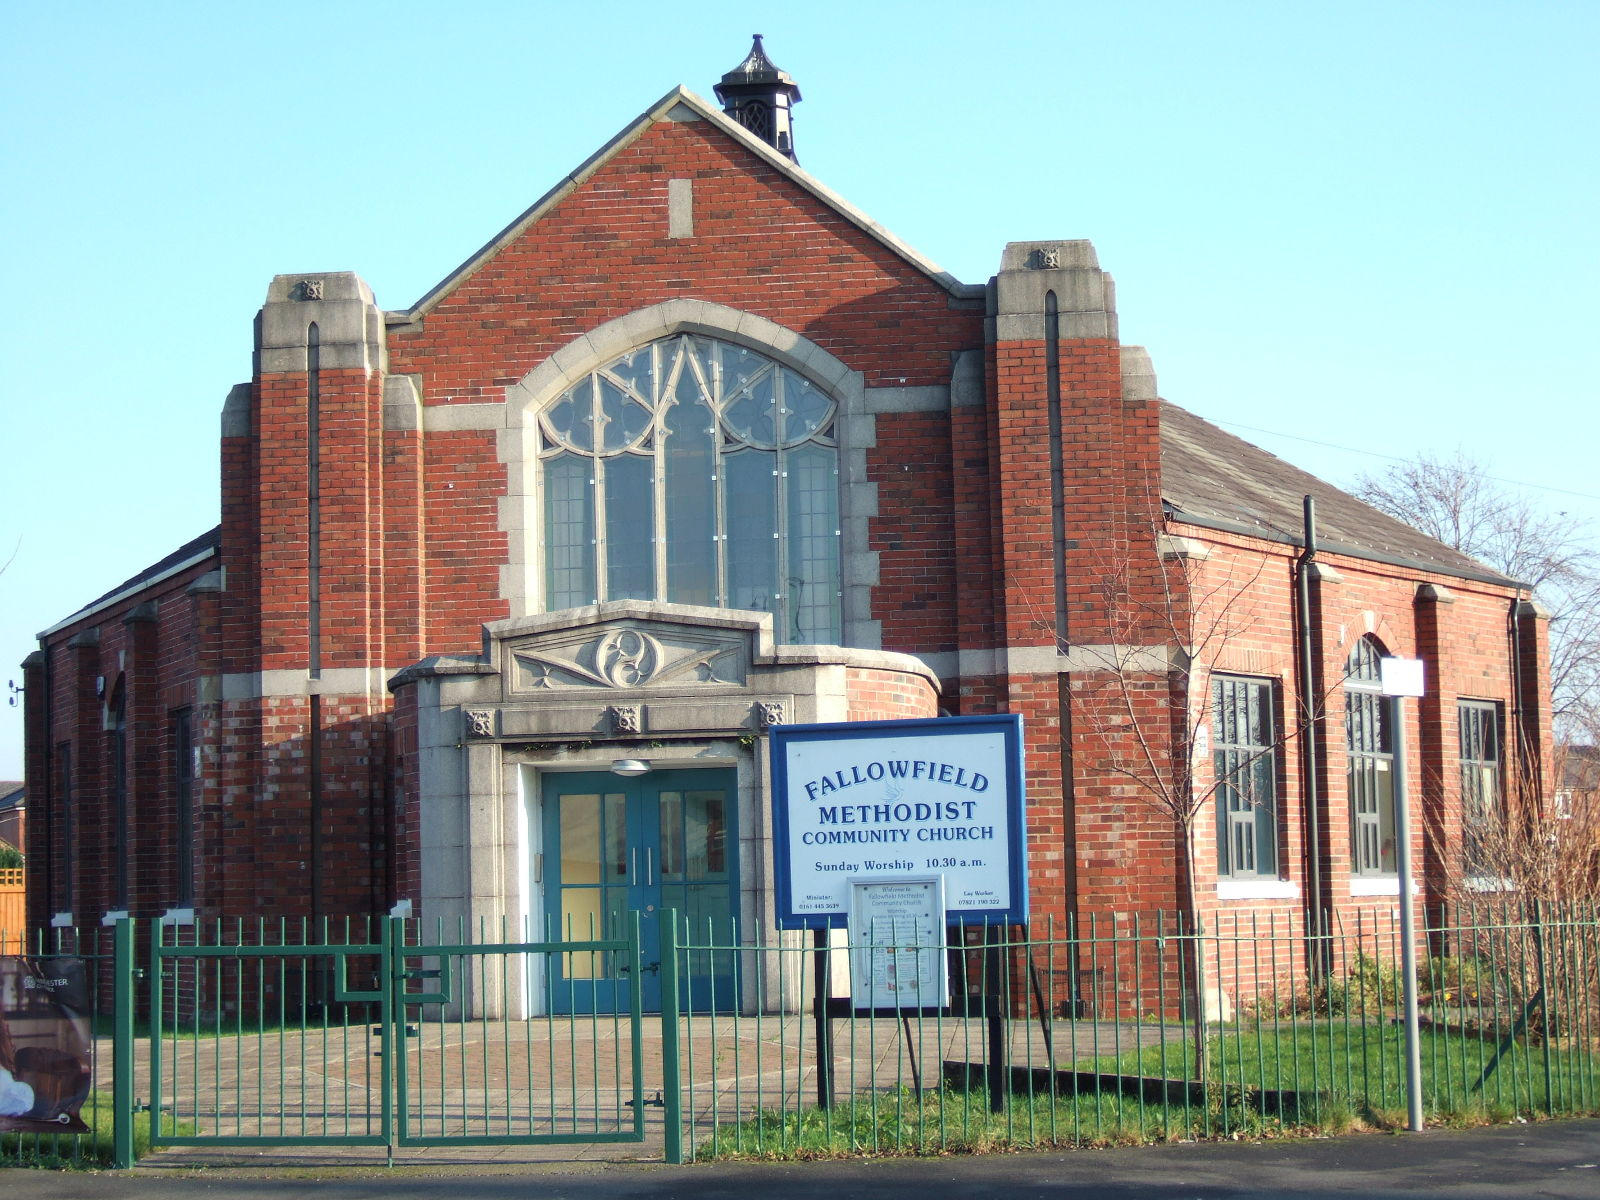 Fallowfield Methodist Community Church